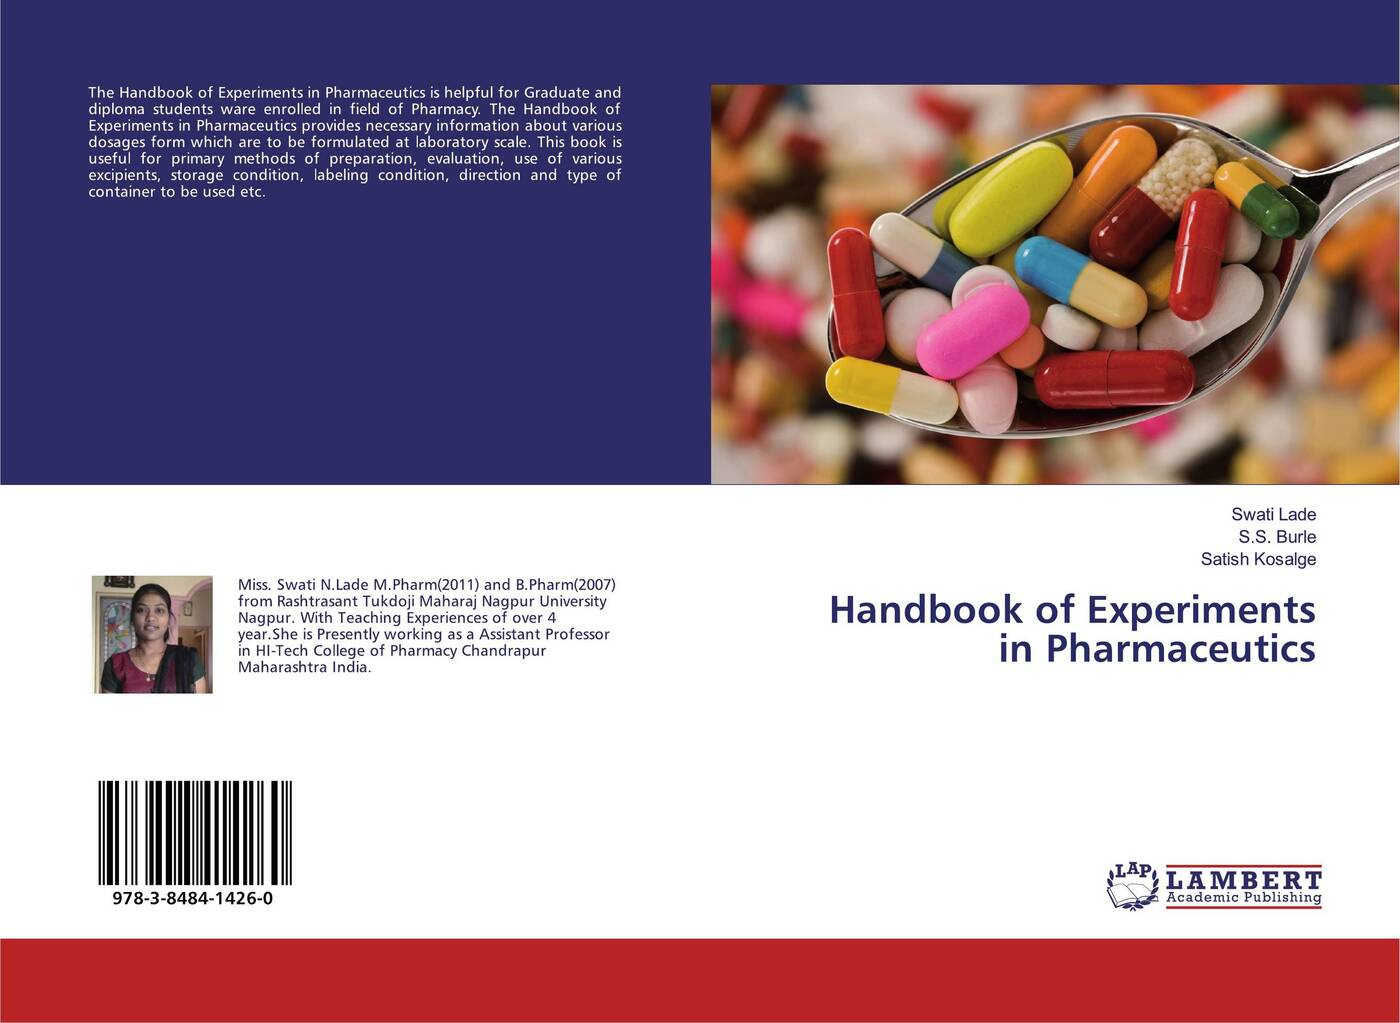 Swati Lade,S.S. Burle and Satish Kosalge Handbook of Experiments in Pharmaceutics beamex pc106 used in good condition